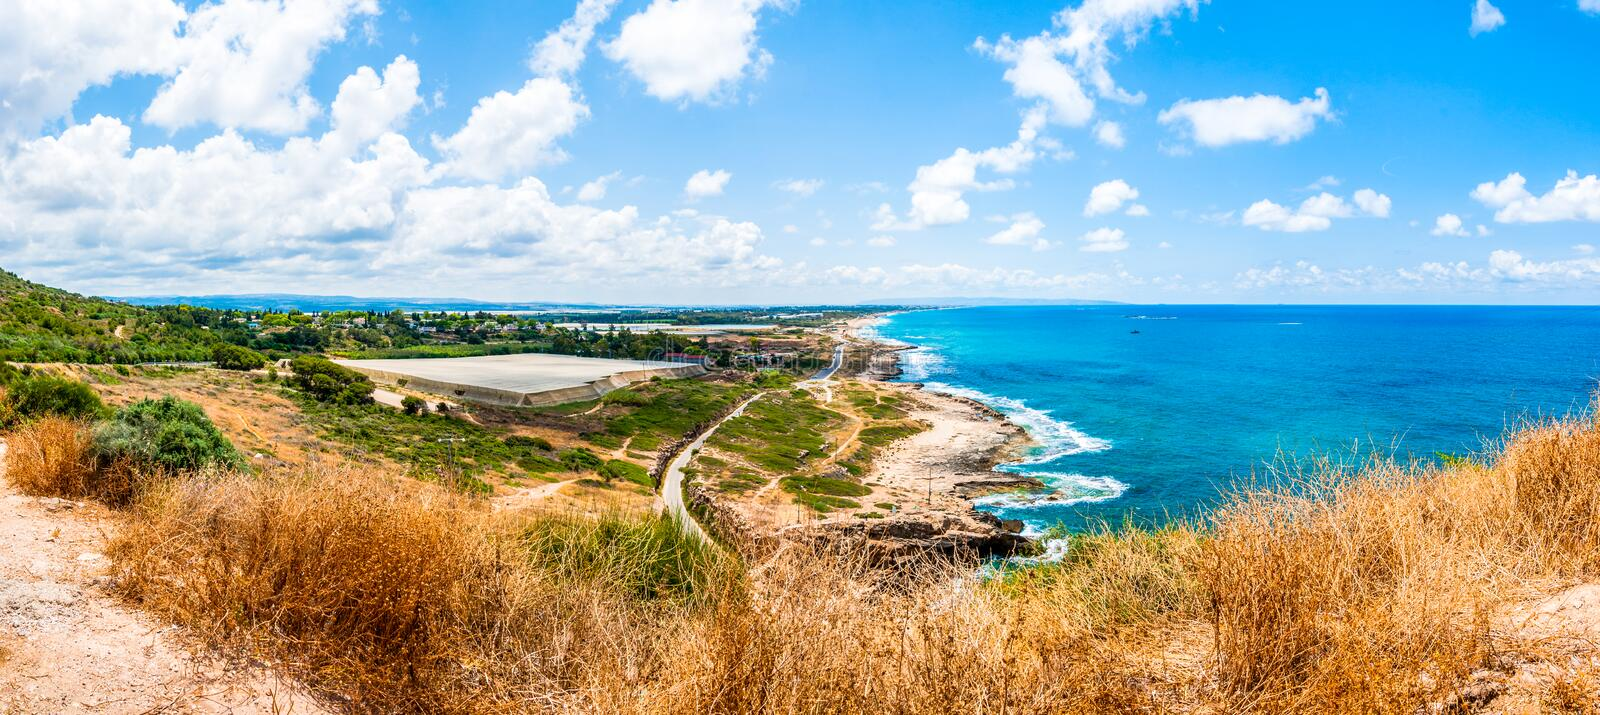 View on North Galilee nature and Mediterranean Sea coast from Rosh Hanikra National Park in Israel stock image